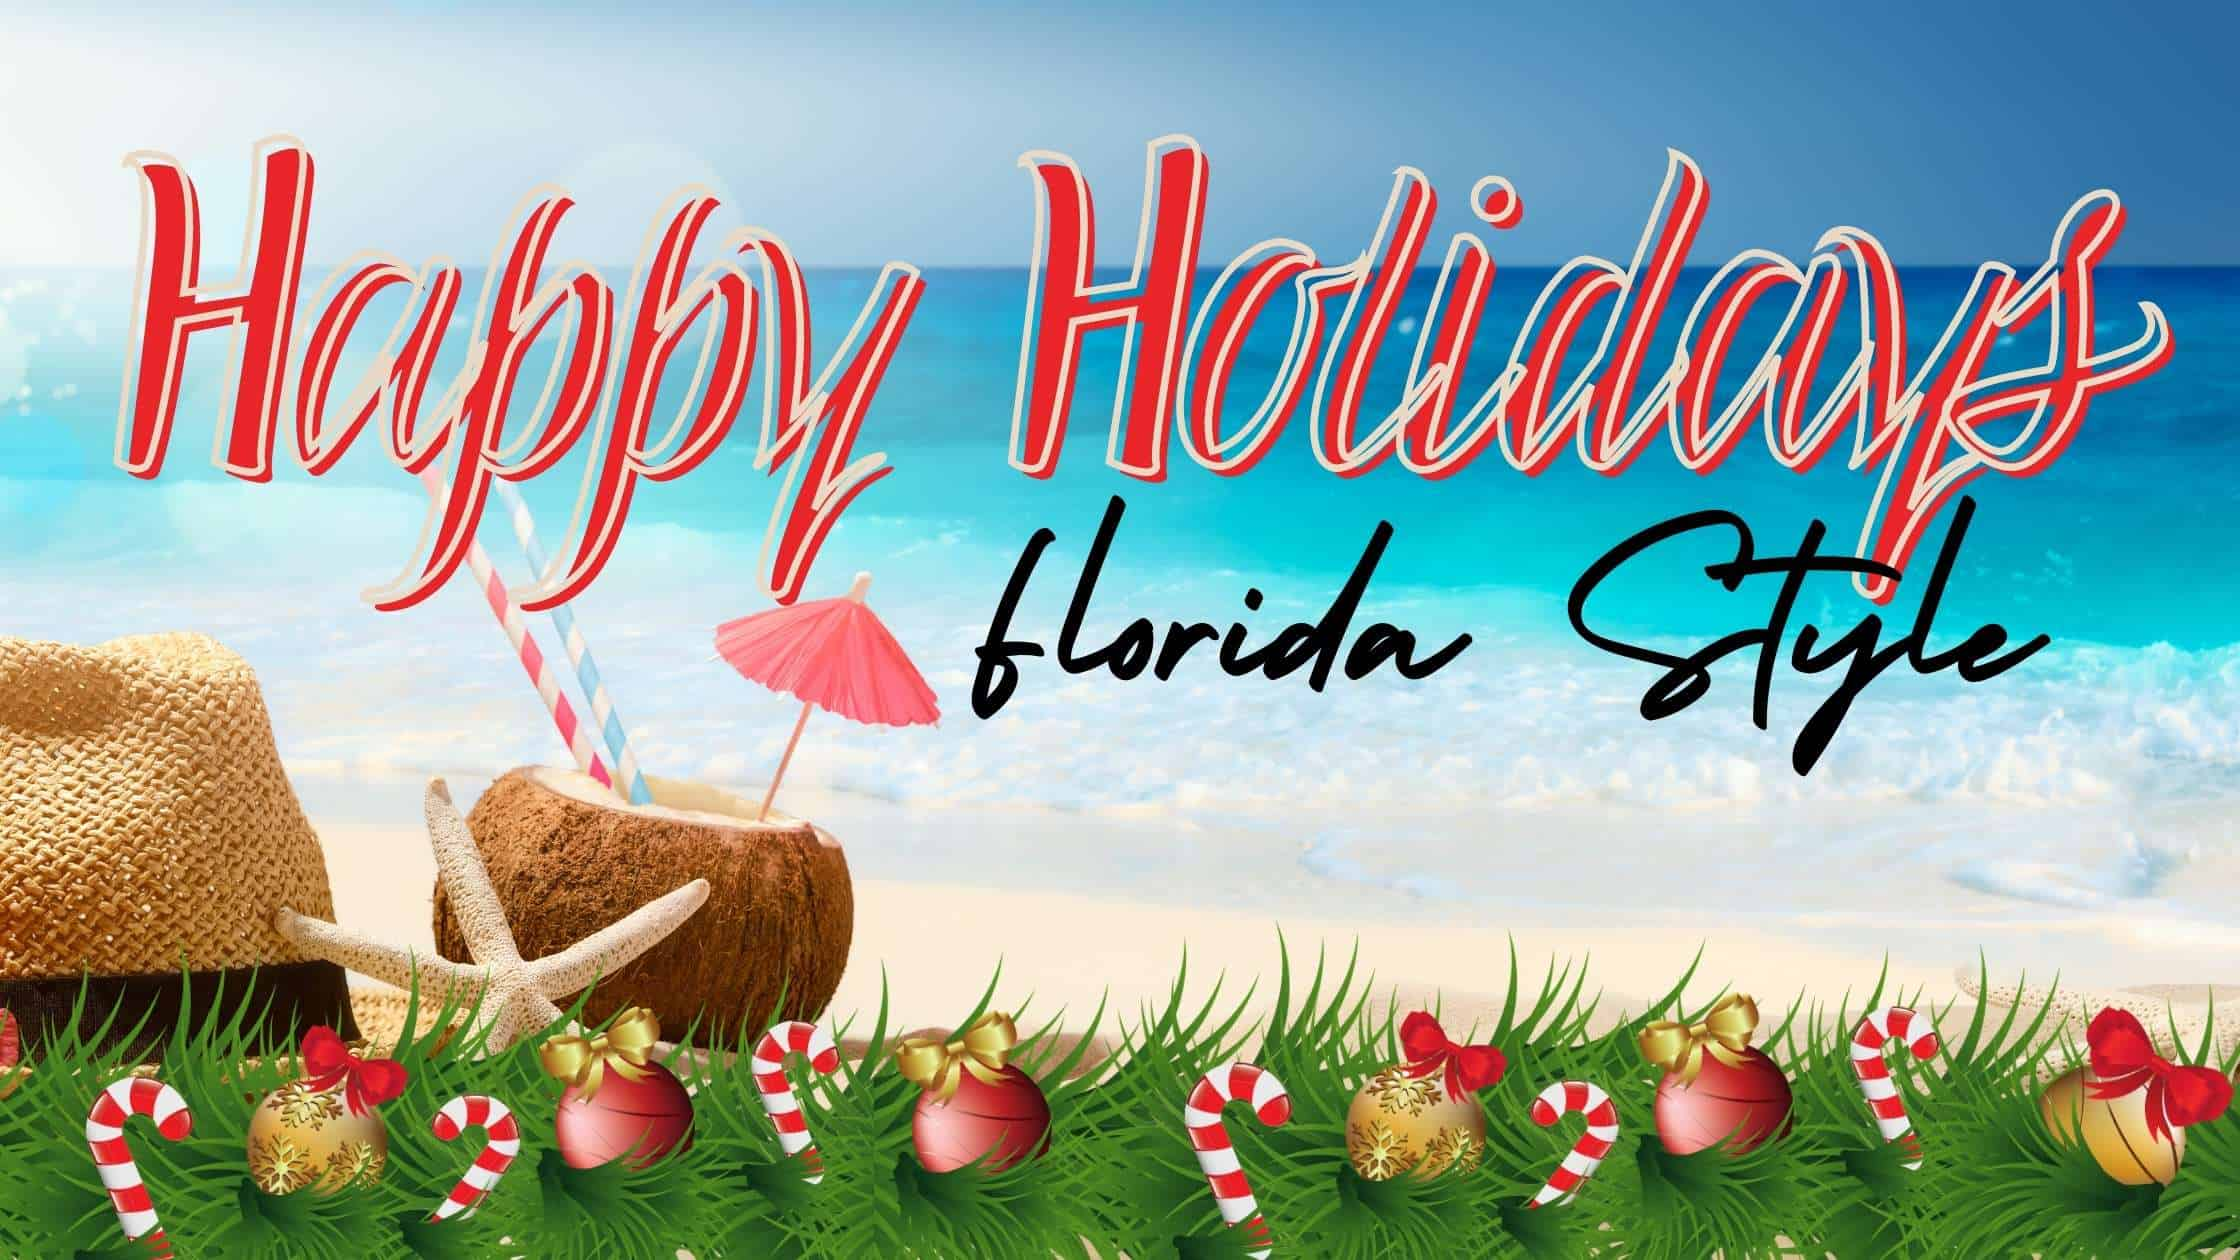 Happy Holidays Florida Style, with Deckard & Company, a Boutique Marketing Agency based in Bradenton, Florida